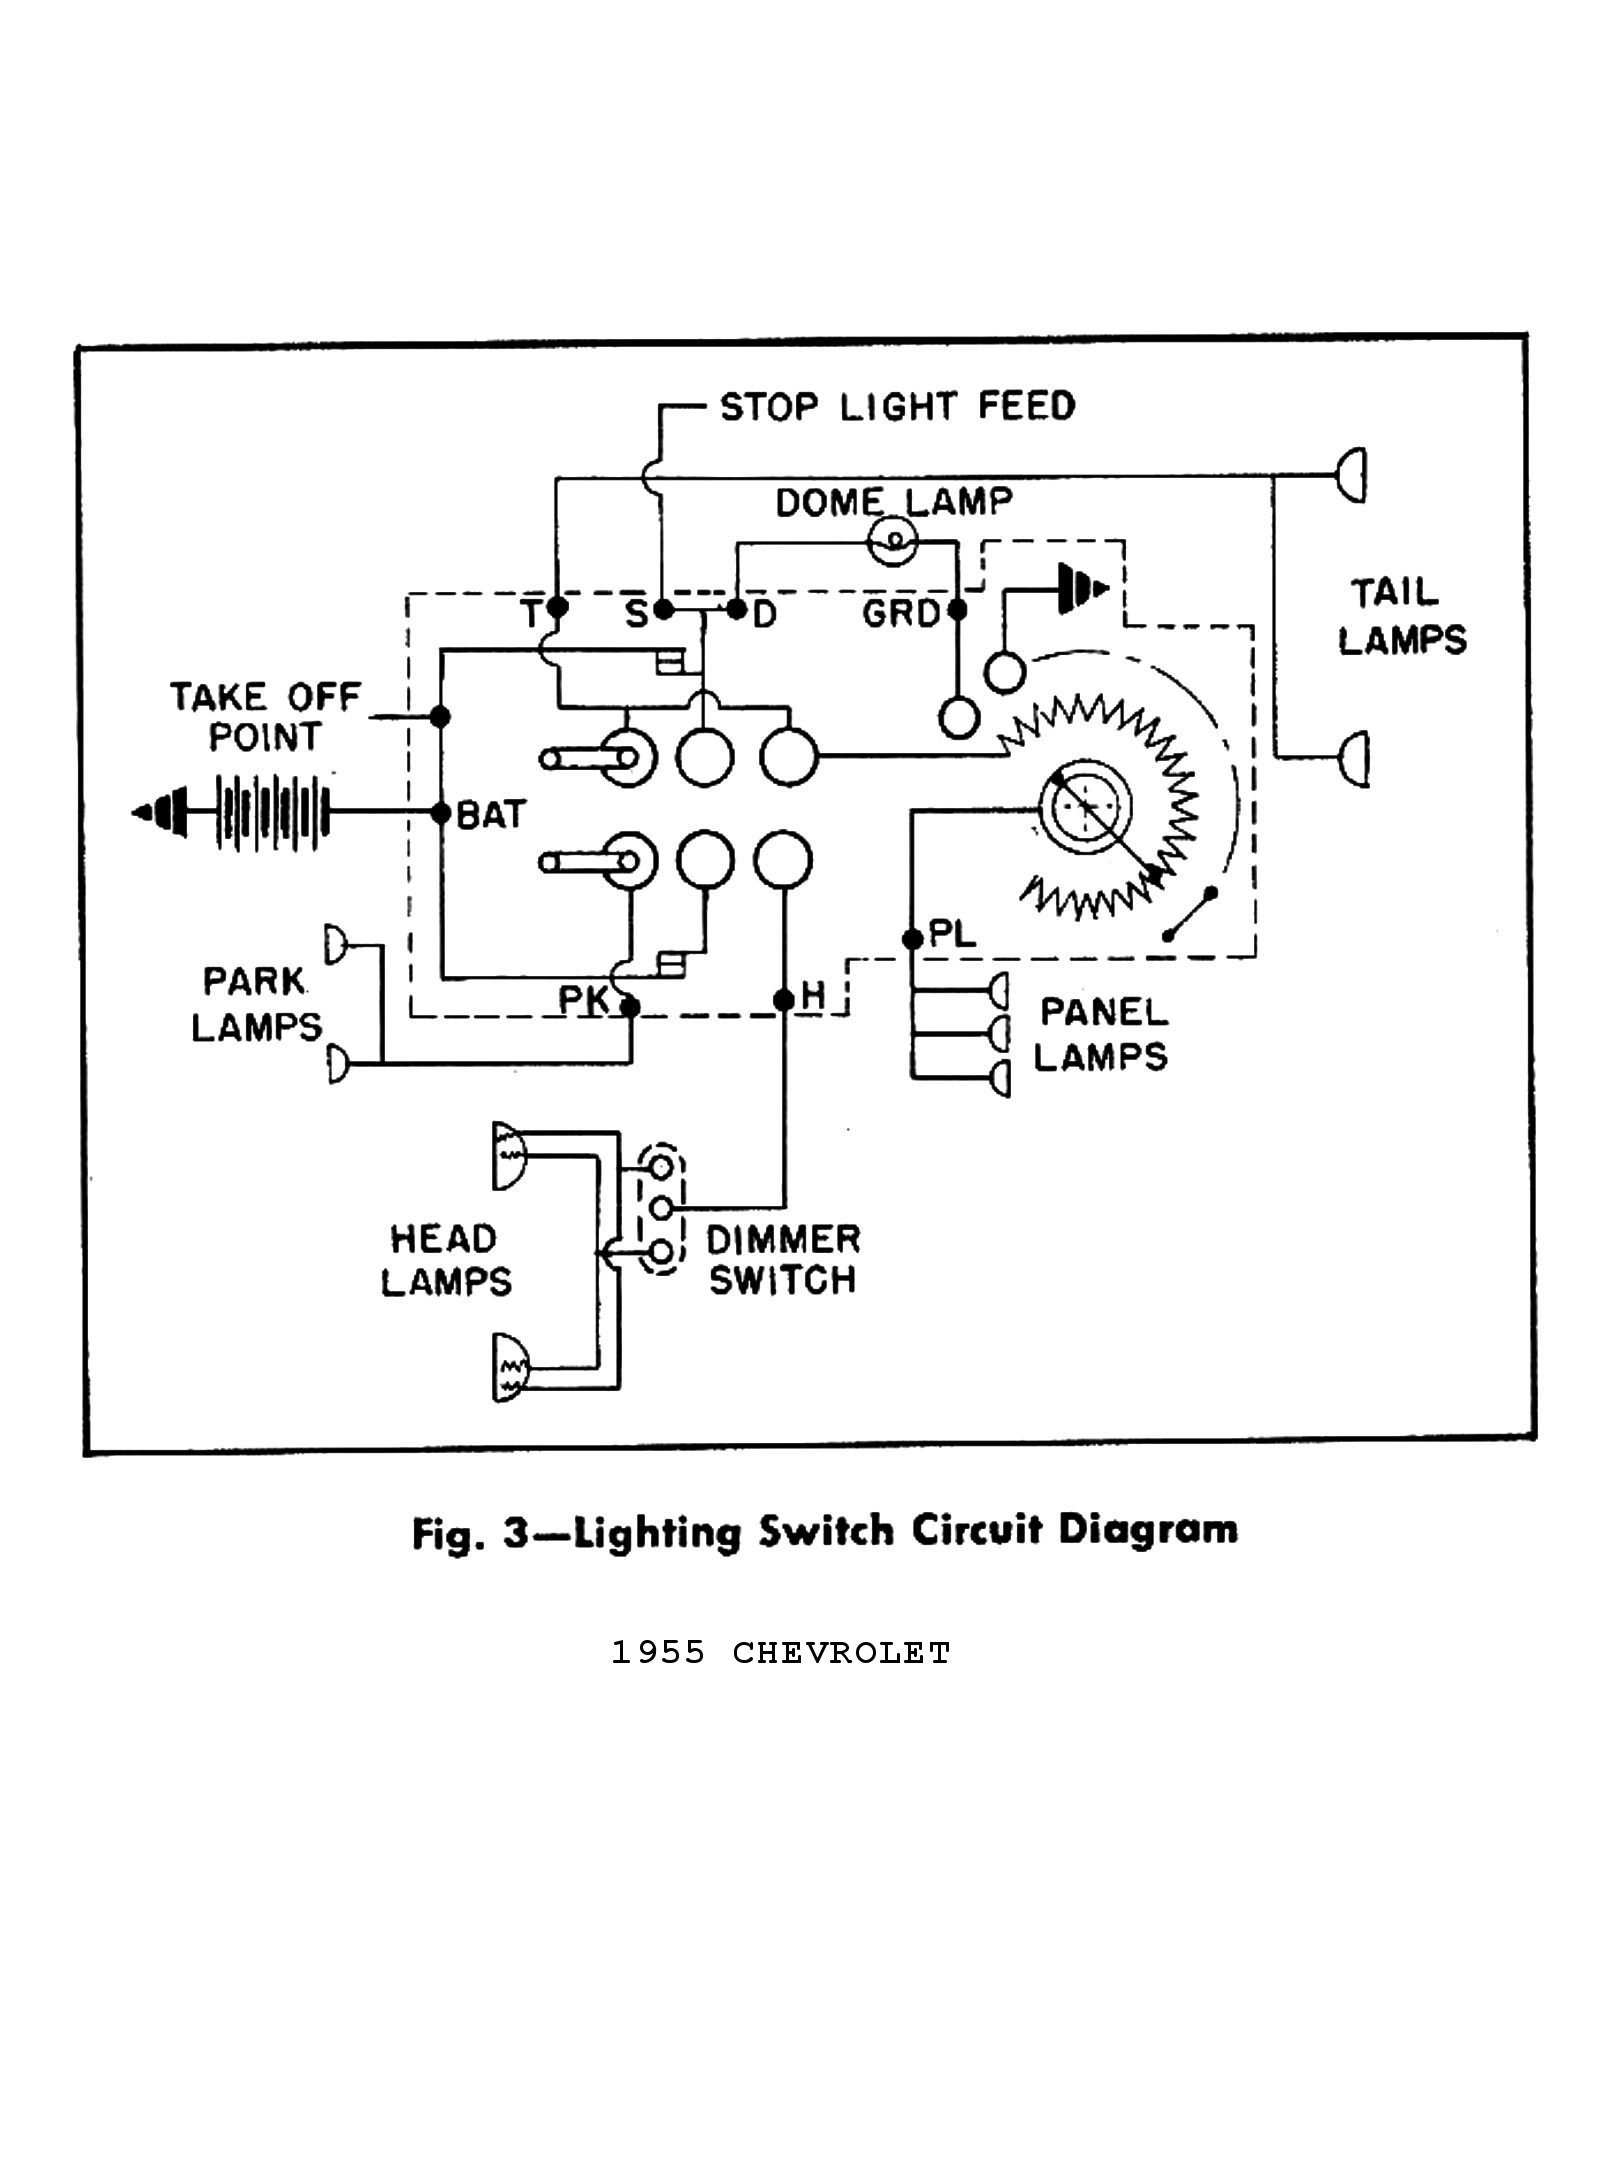 1957 Chevy Ignition Switch Wiring Diagram Archive Of Automotive For Truck Just Data Rh Ag Skiphire Co Uk